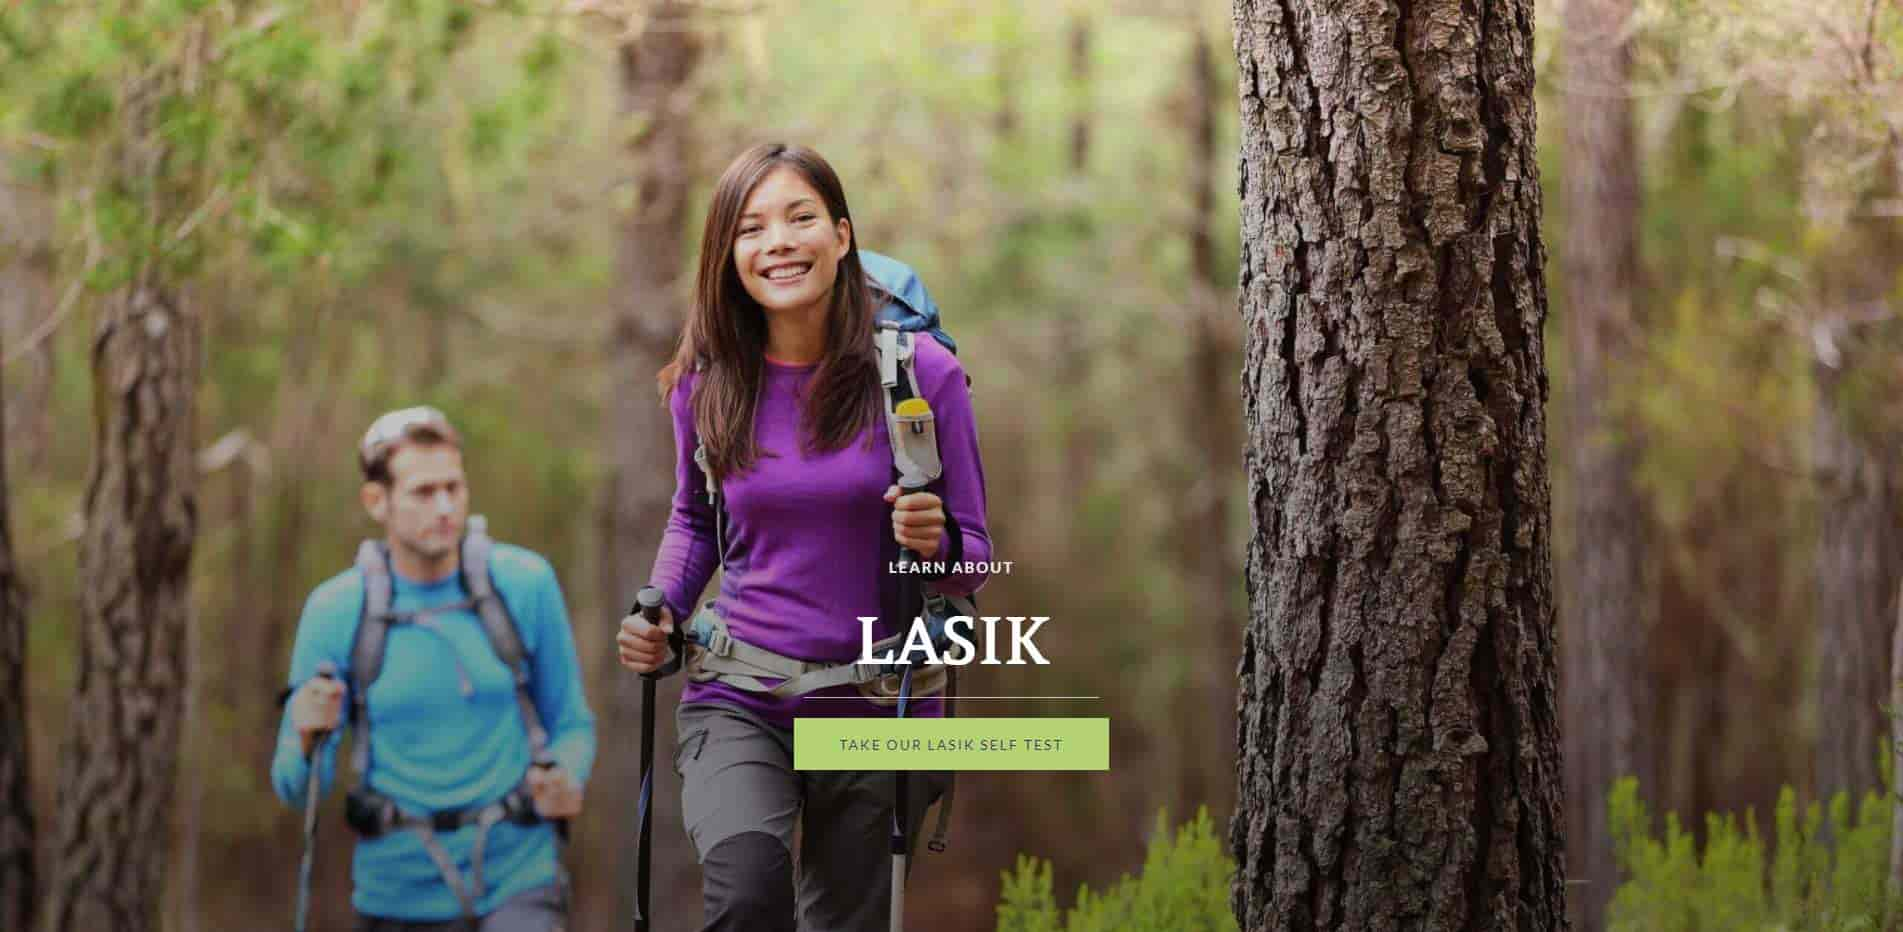 Learn about LASIK